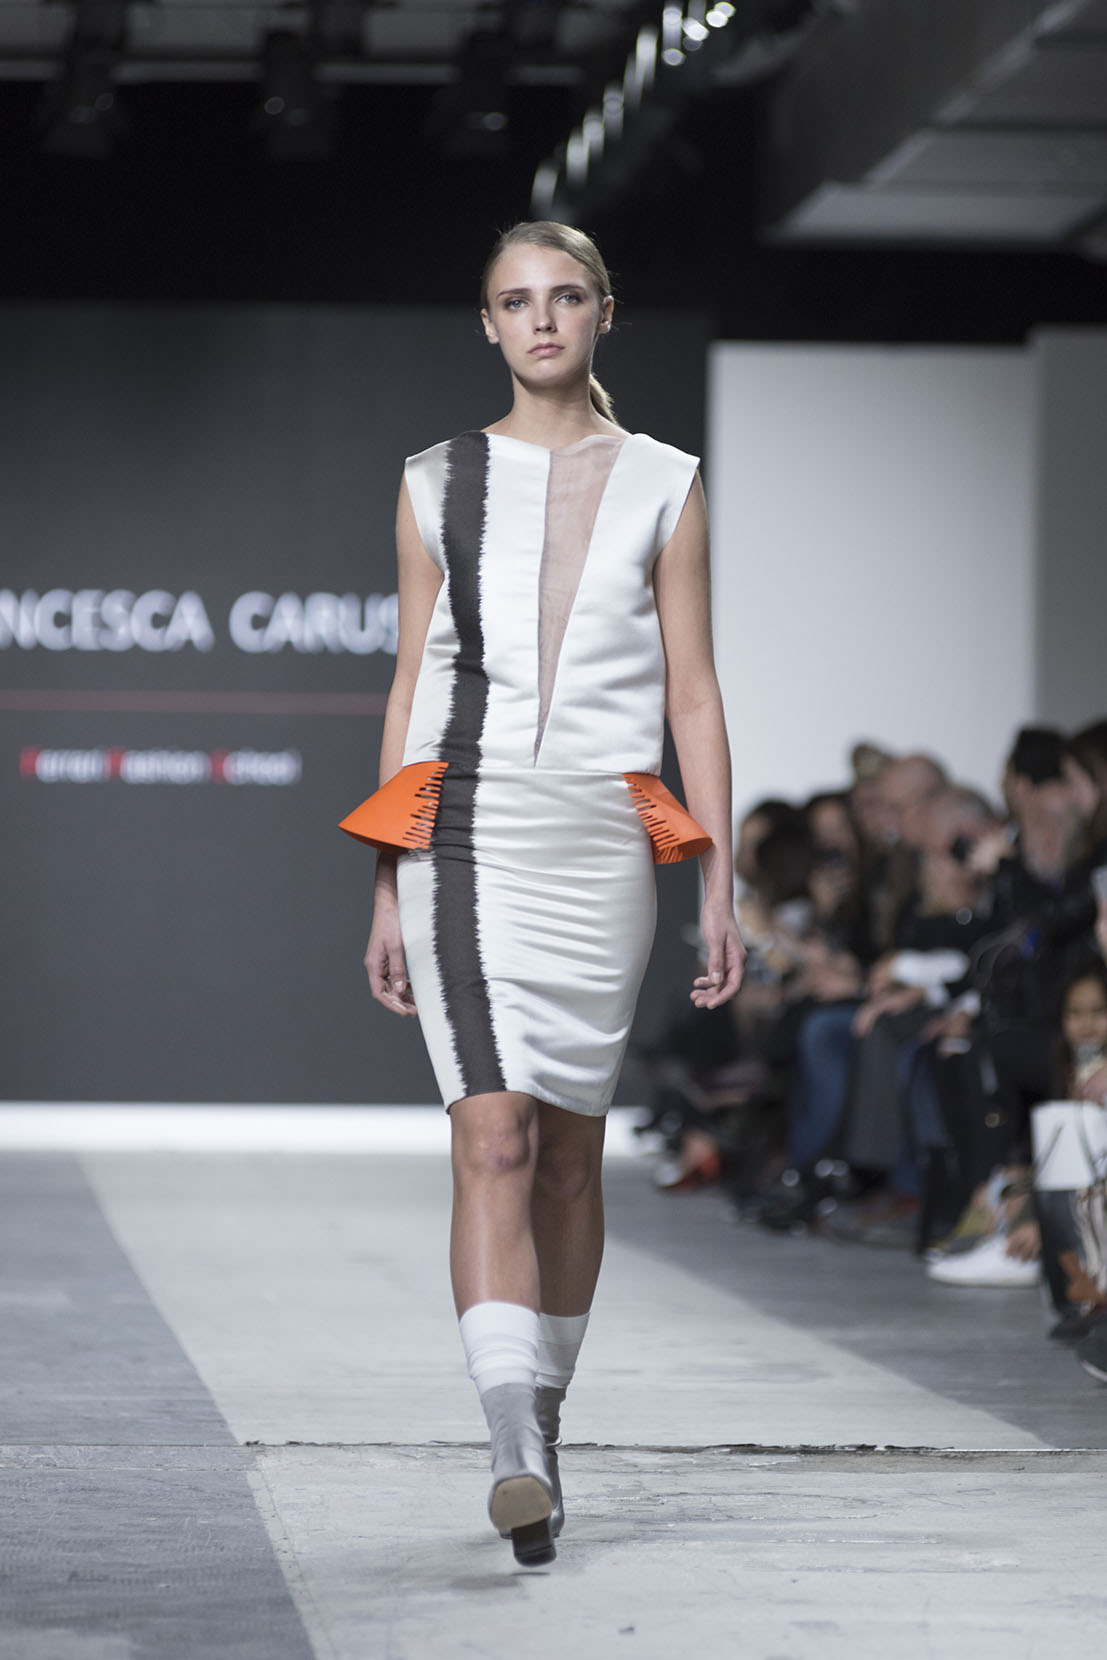 Fashion Designer: Francesca Caruso - Fashion Graduate Italia Fashion Show - Ferrari Fashion School